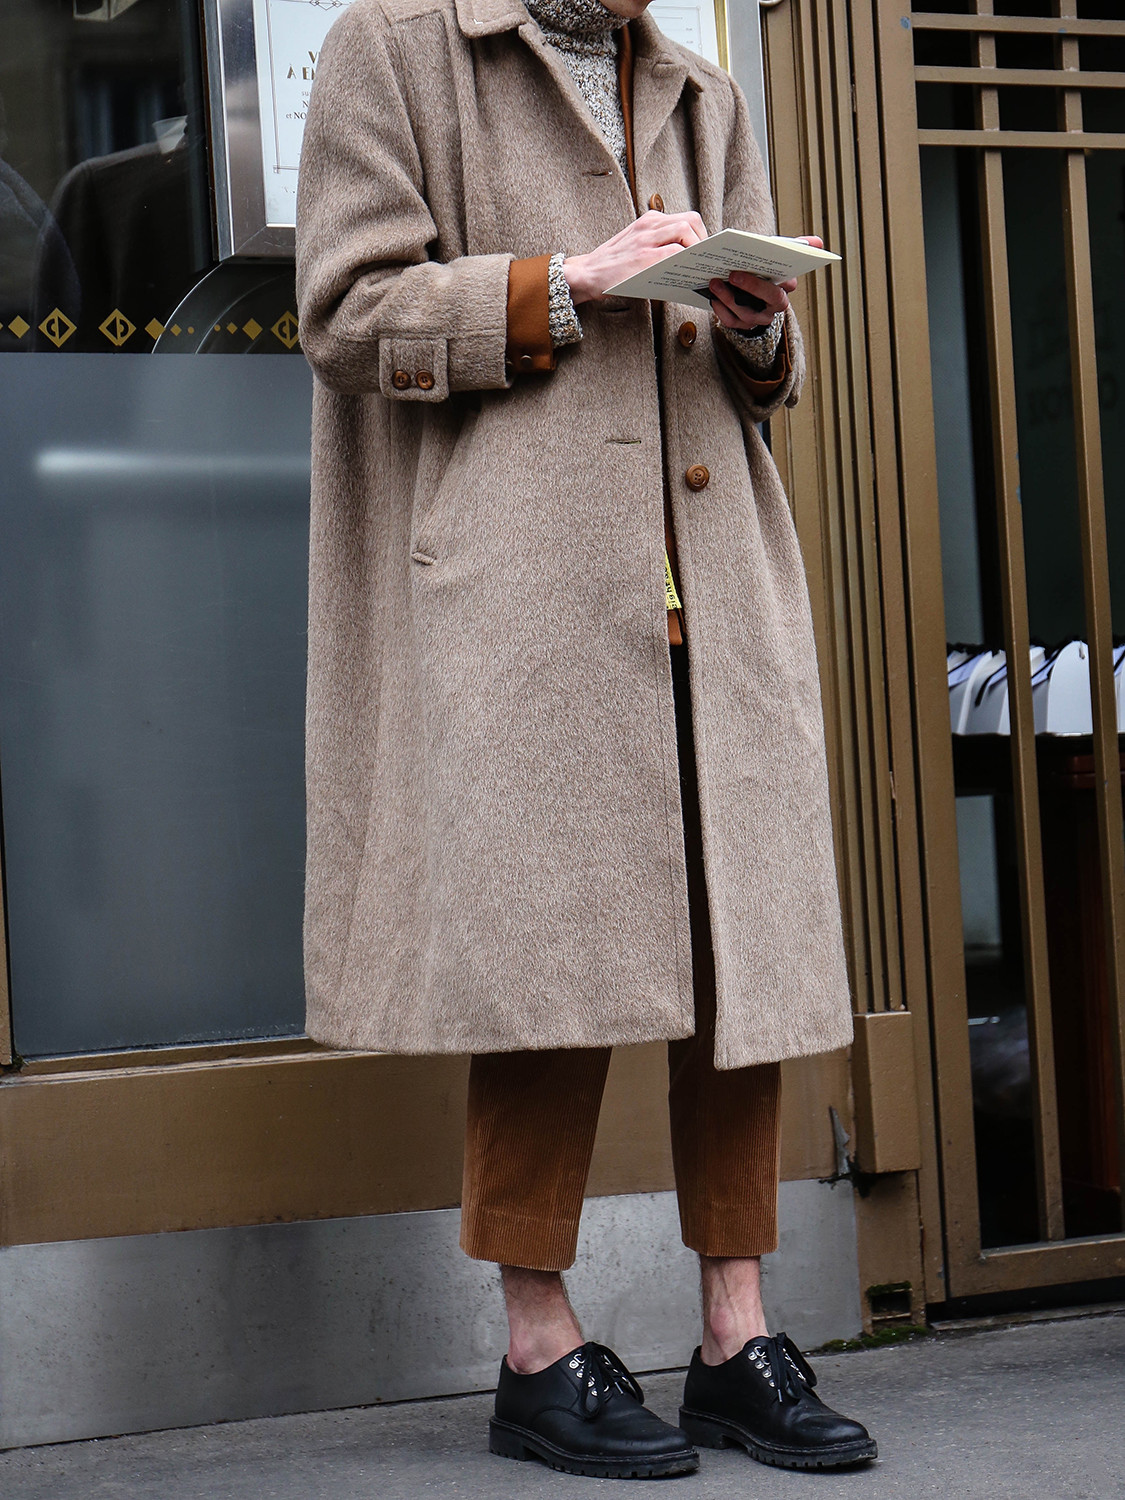 Men's outfit idea for 2021 with neutral camel coat, utility jacket, neutral lightweight rollneck sweater, black oxford / derby shoes. Suitable for winter.